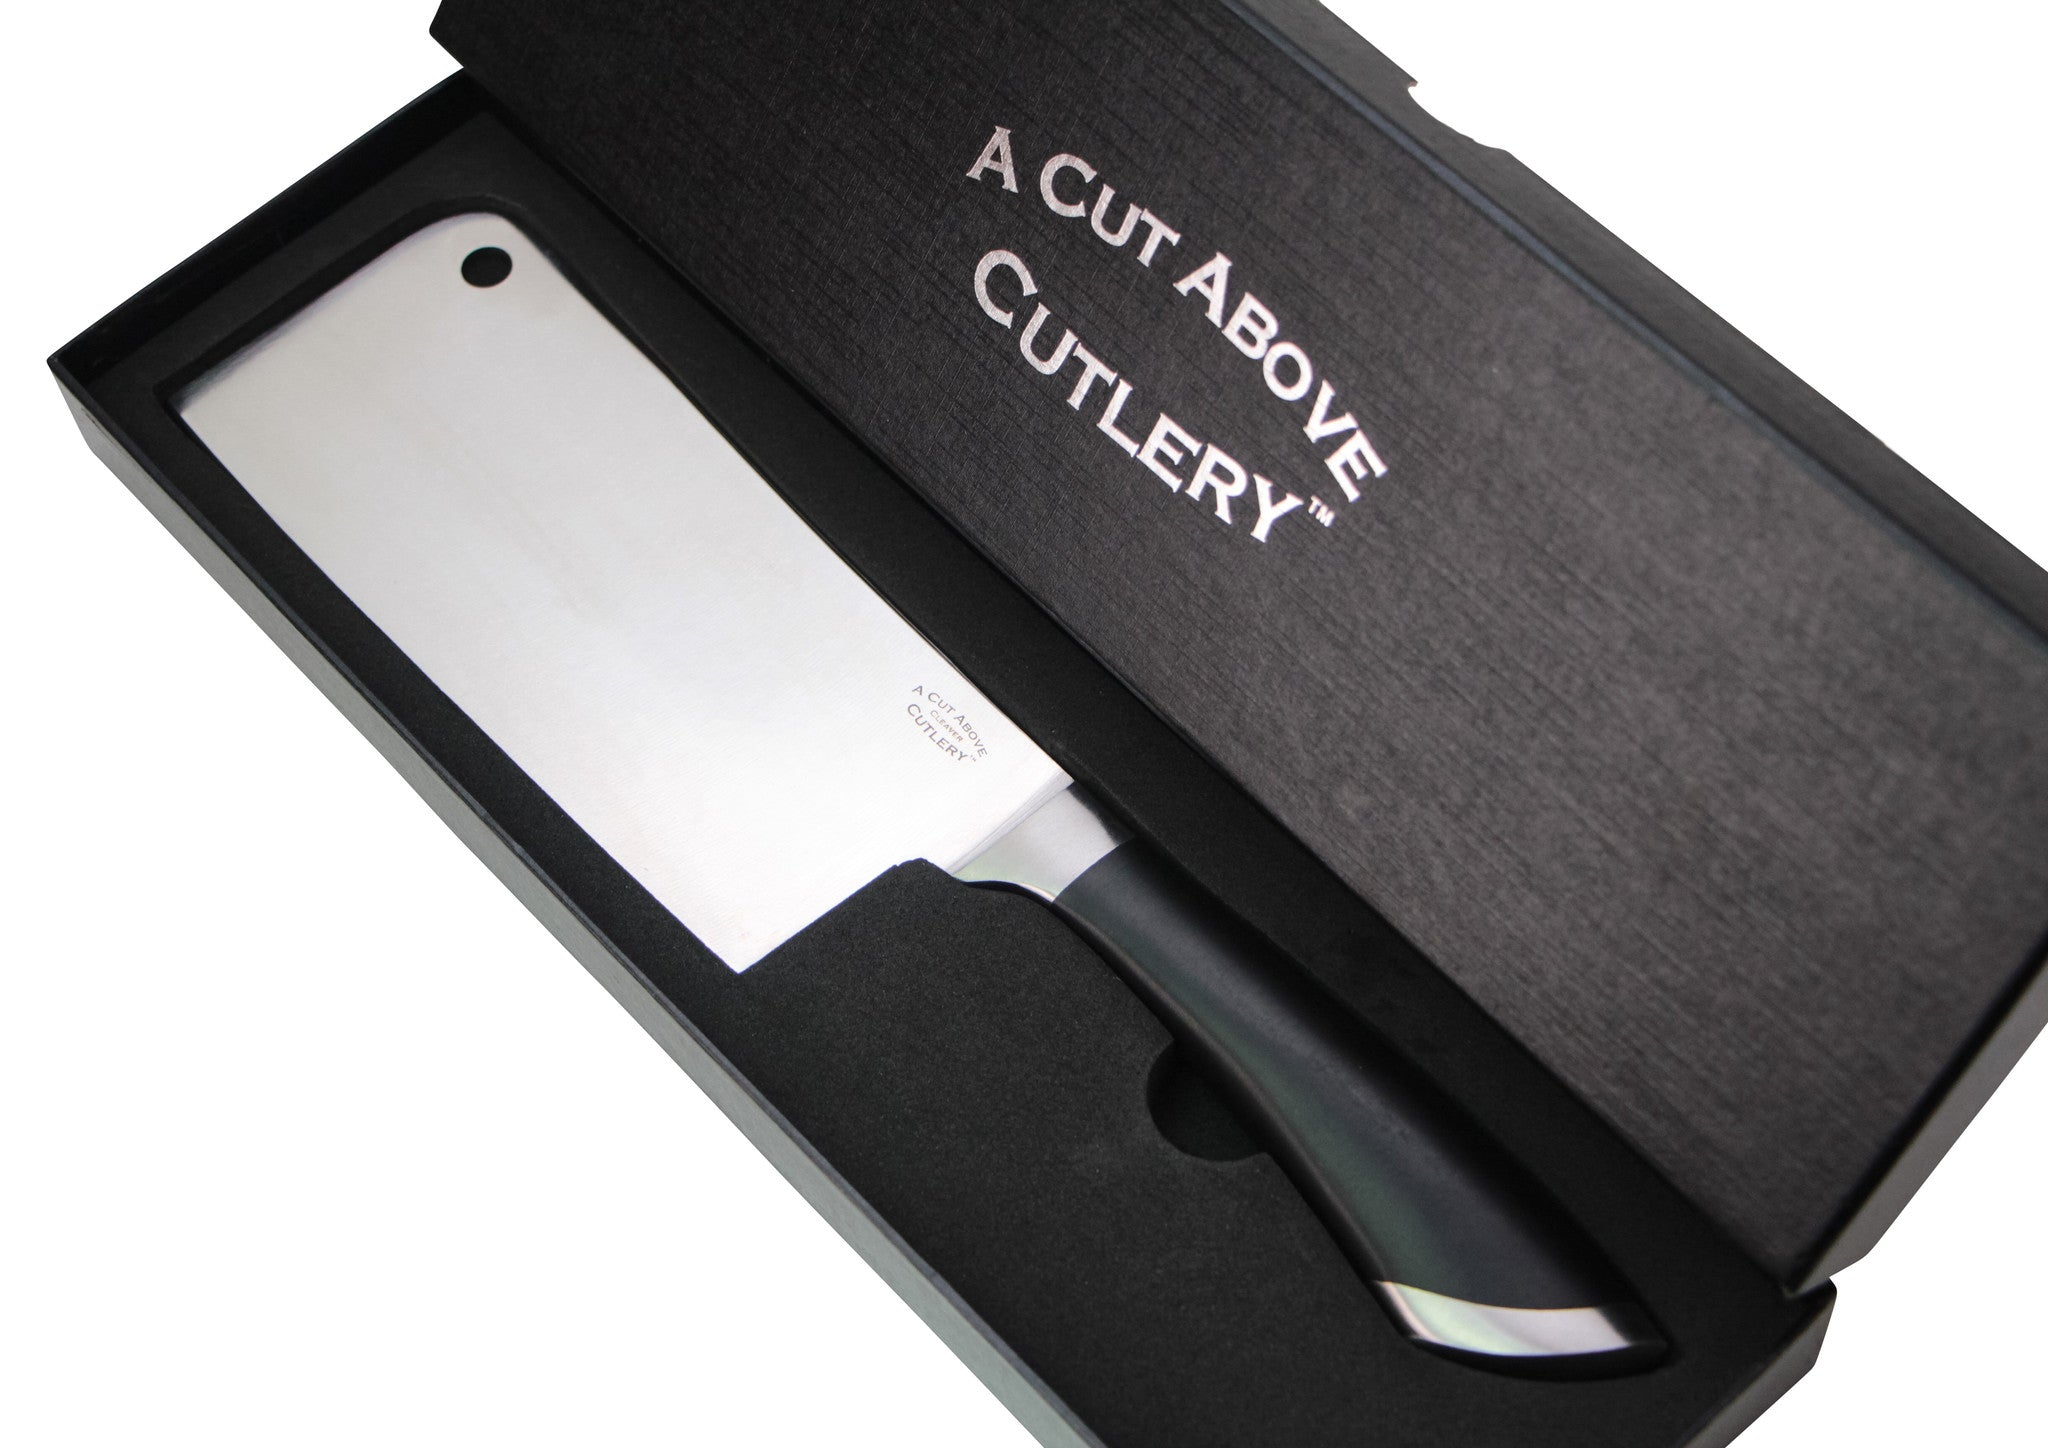 A Cut Above Cutlery Cleaver For Meat And Vegetables Chop, Butcher At Home Like A Professional, Safe and Comfortable Handle Can Not Come Loose, 7 Inch Stainless Steel Blade Keeps Food Tasting Fresh